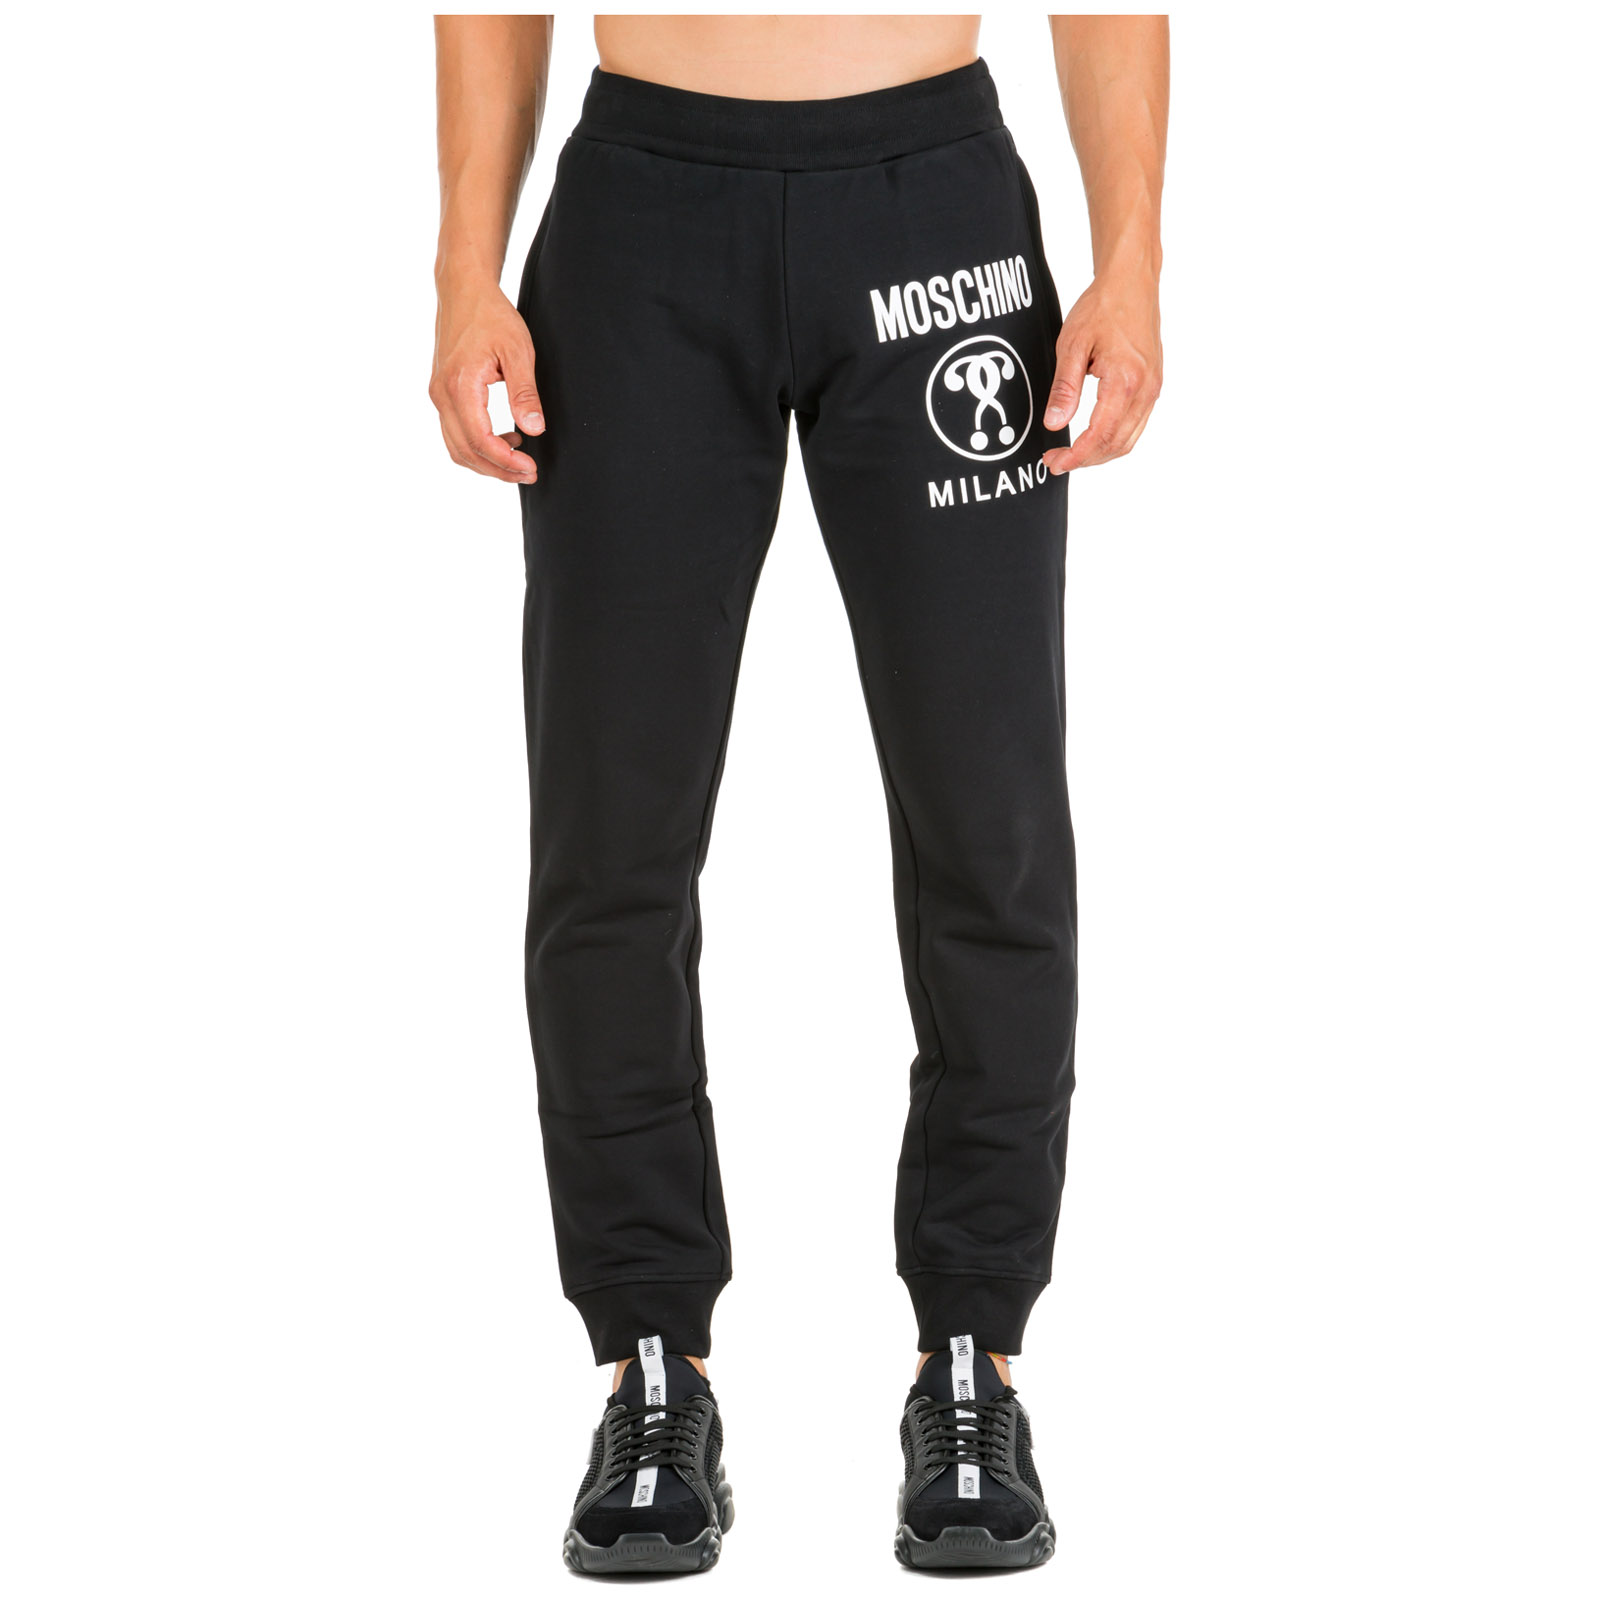 Moschino Pants Men's sport tracksuit trousers slim fit